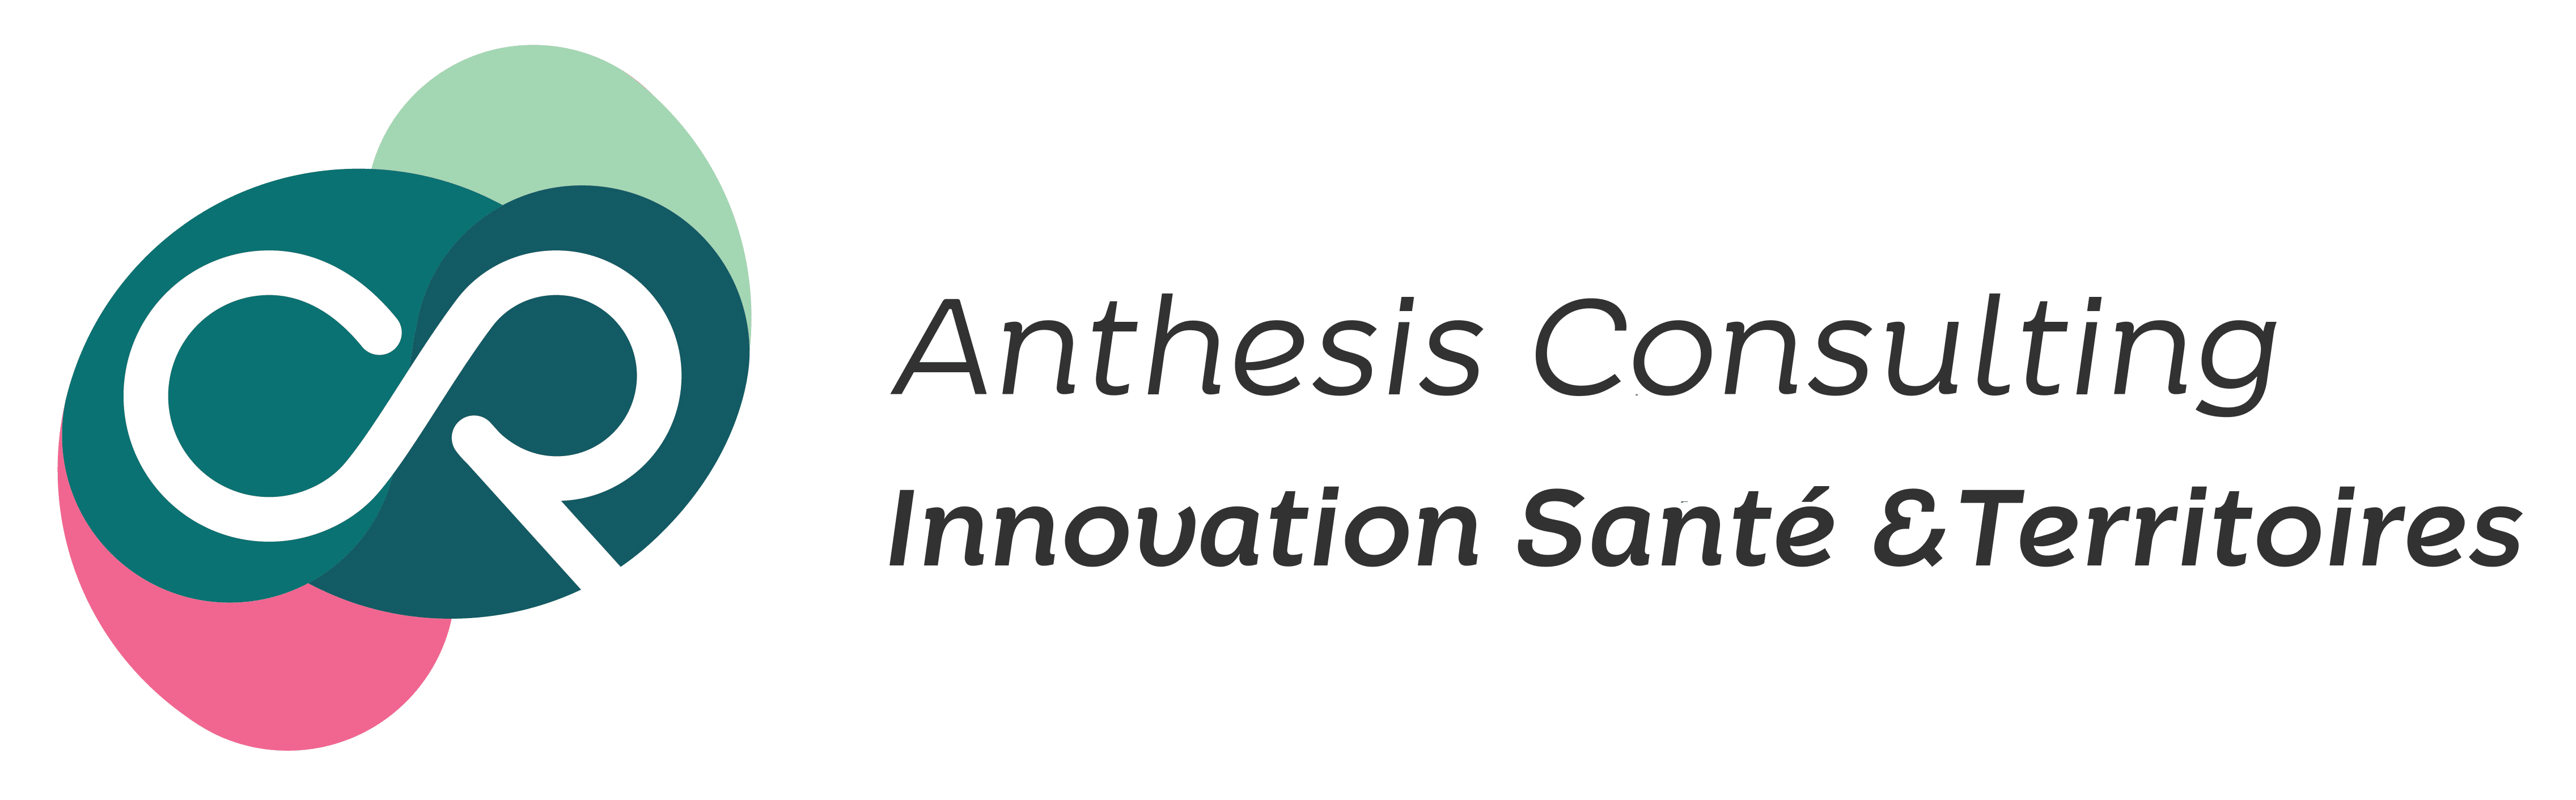 logo Anthesis Consulting